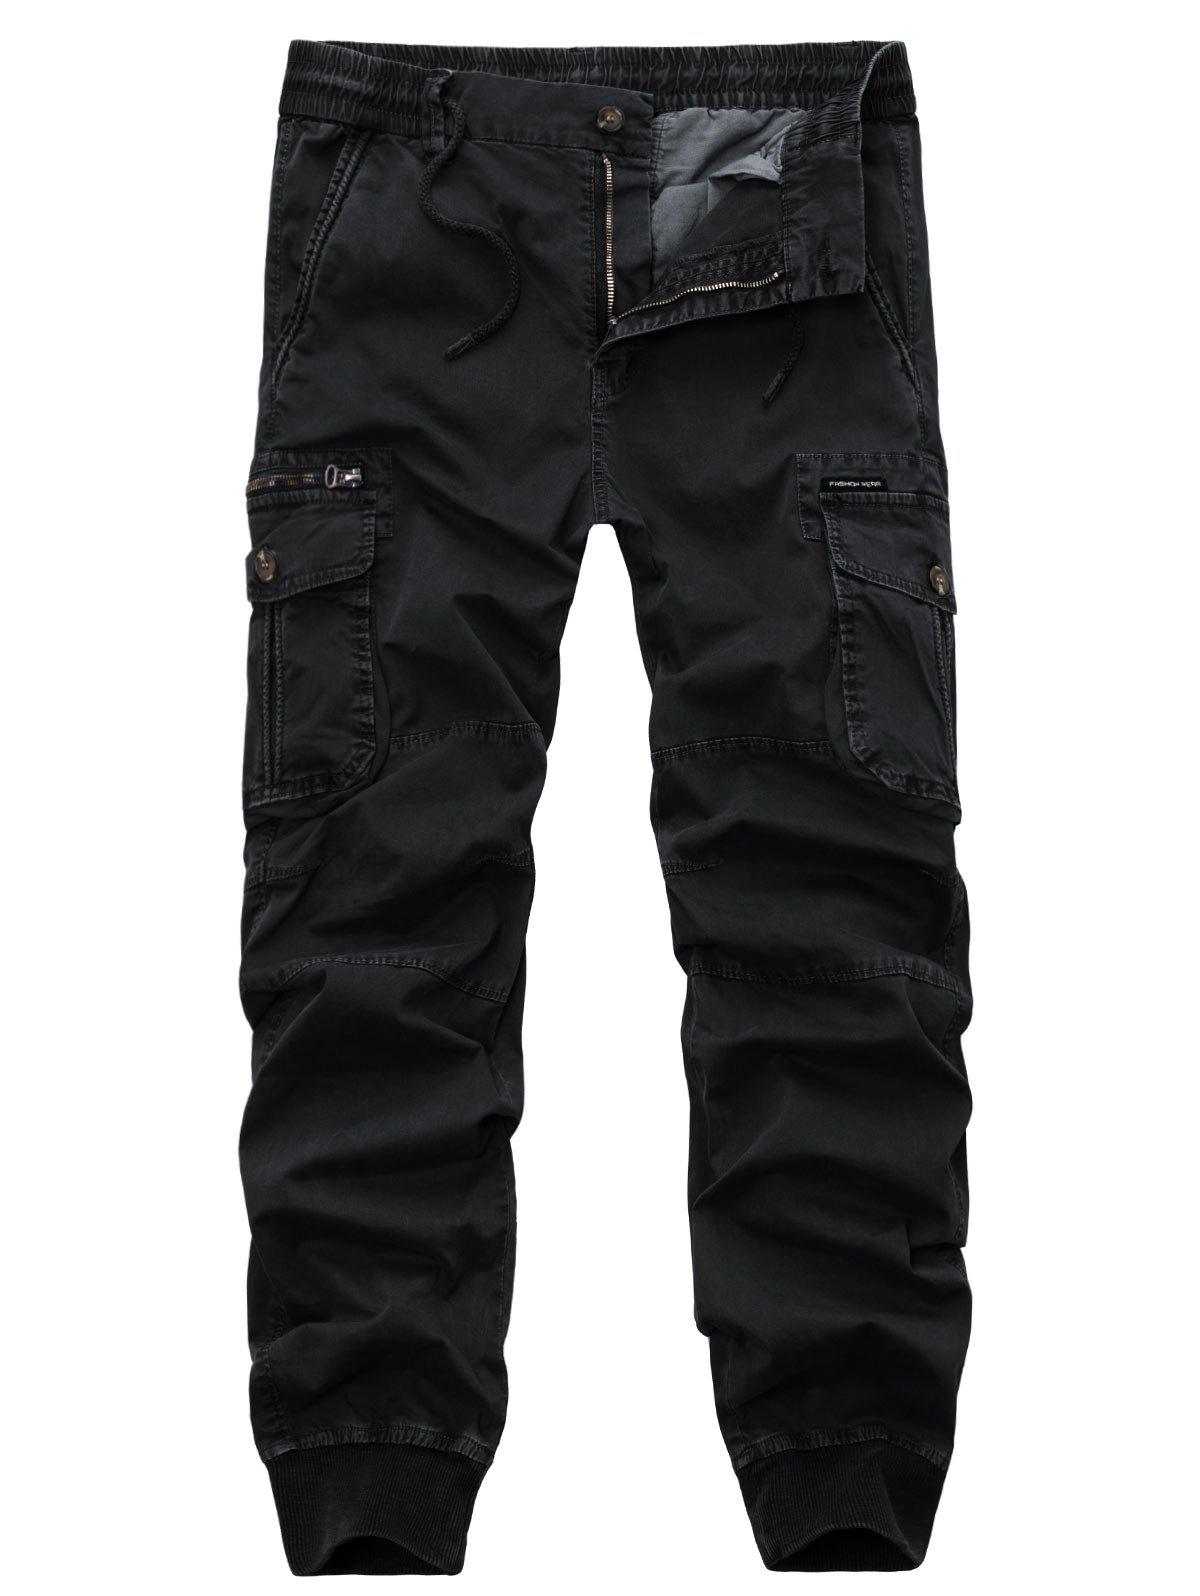 Zipper Fly Beam Feet Drawstring Cargo Pants - BLACK 34